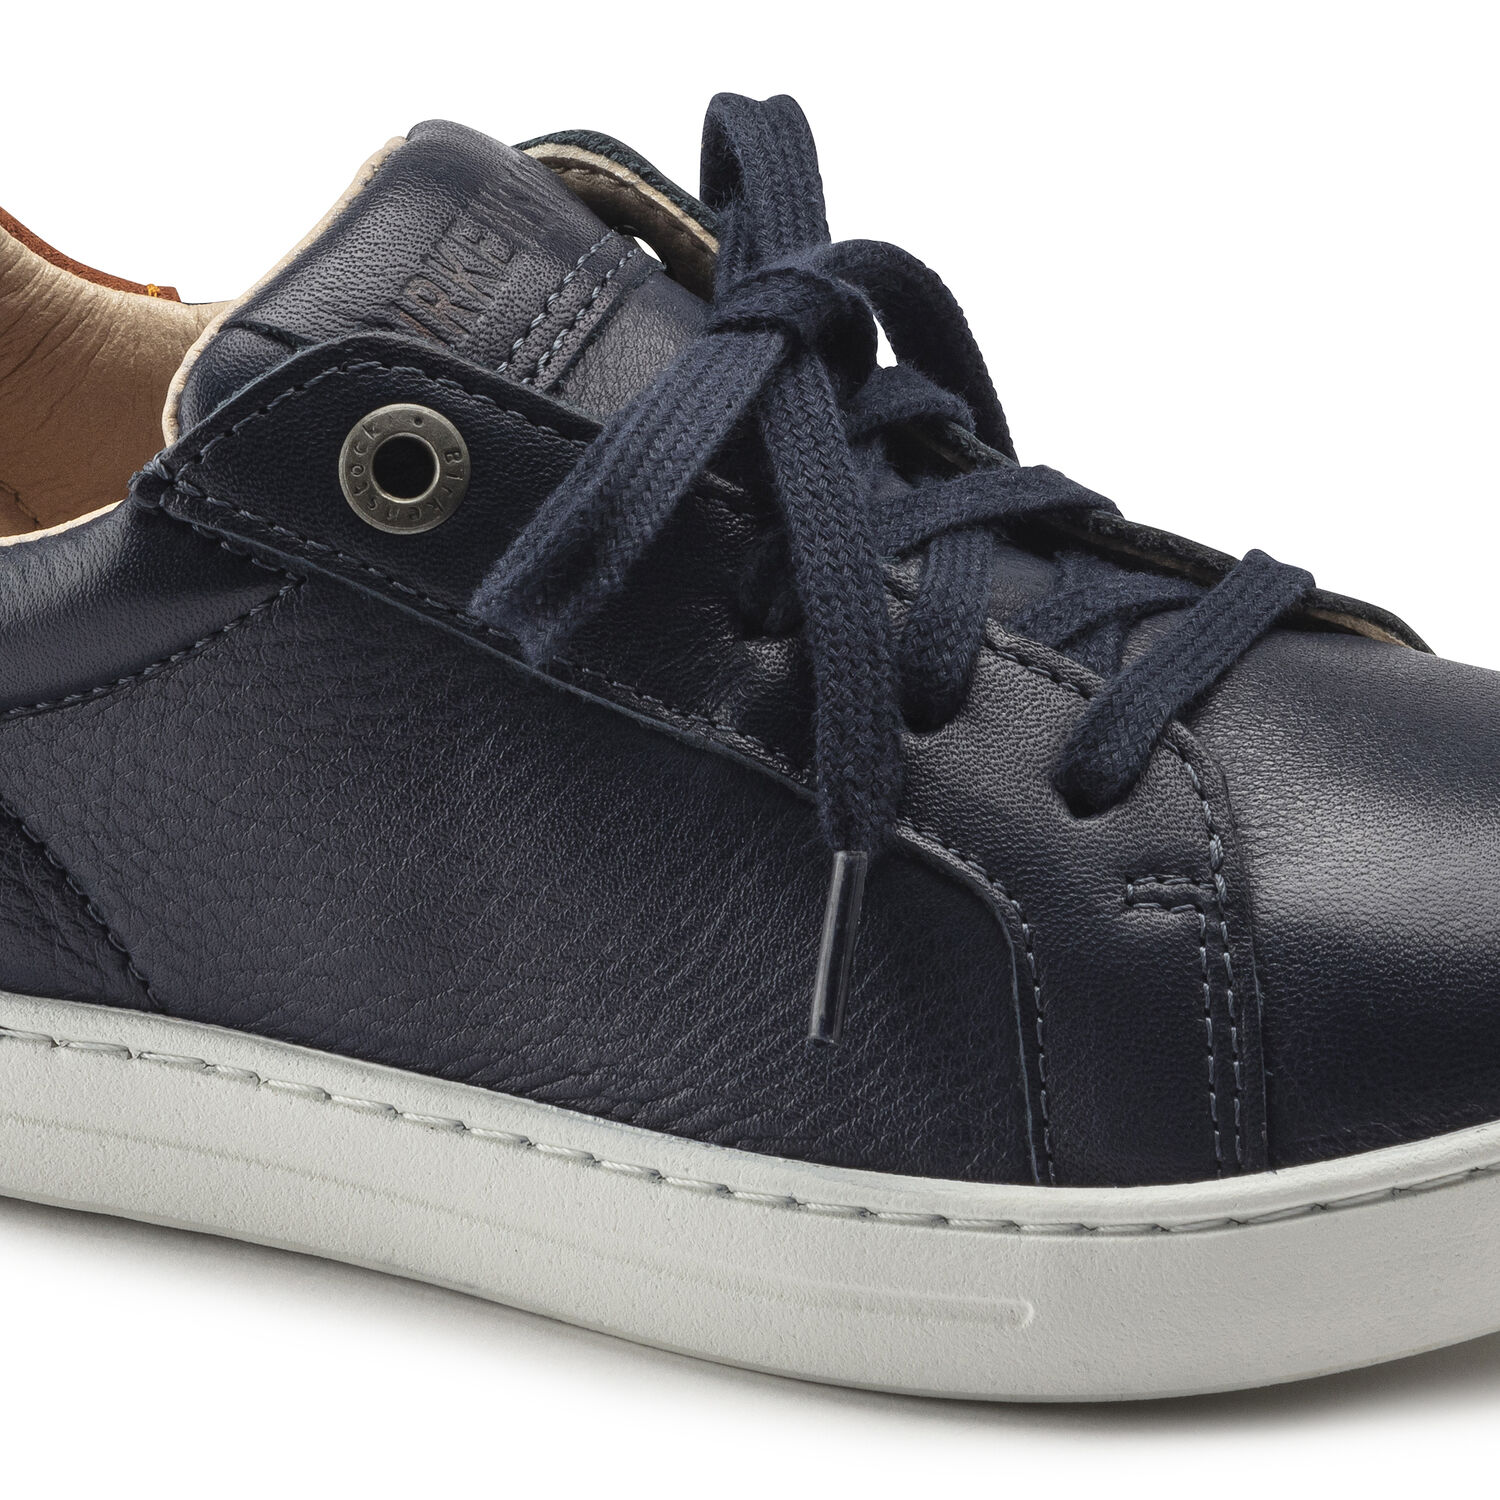 Porto Kids Natural Leather/Suede